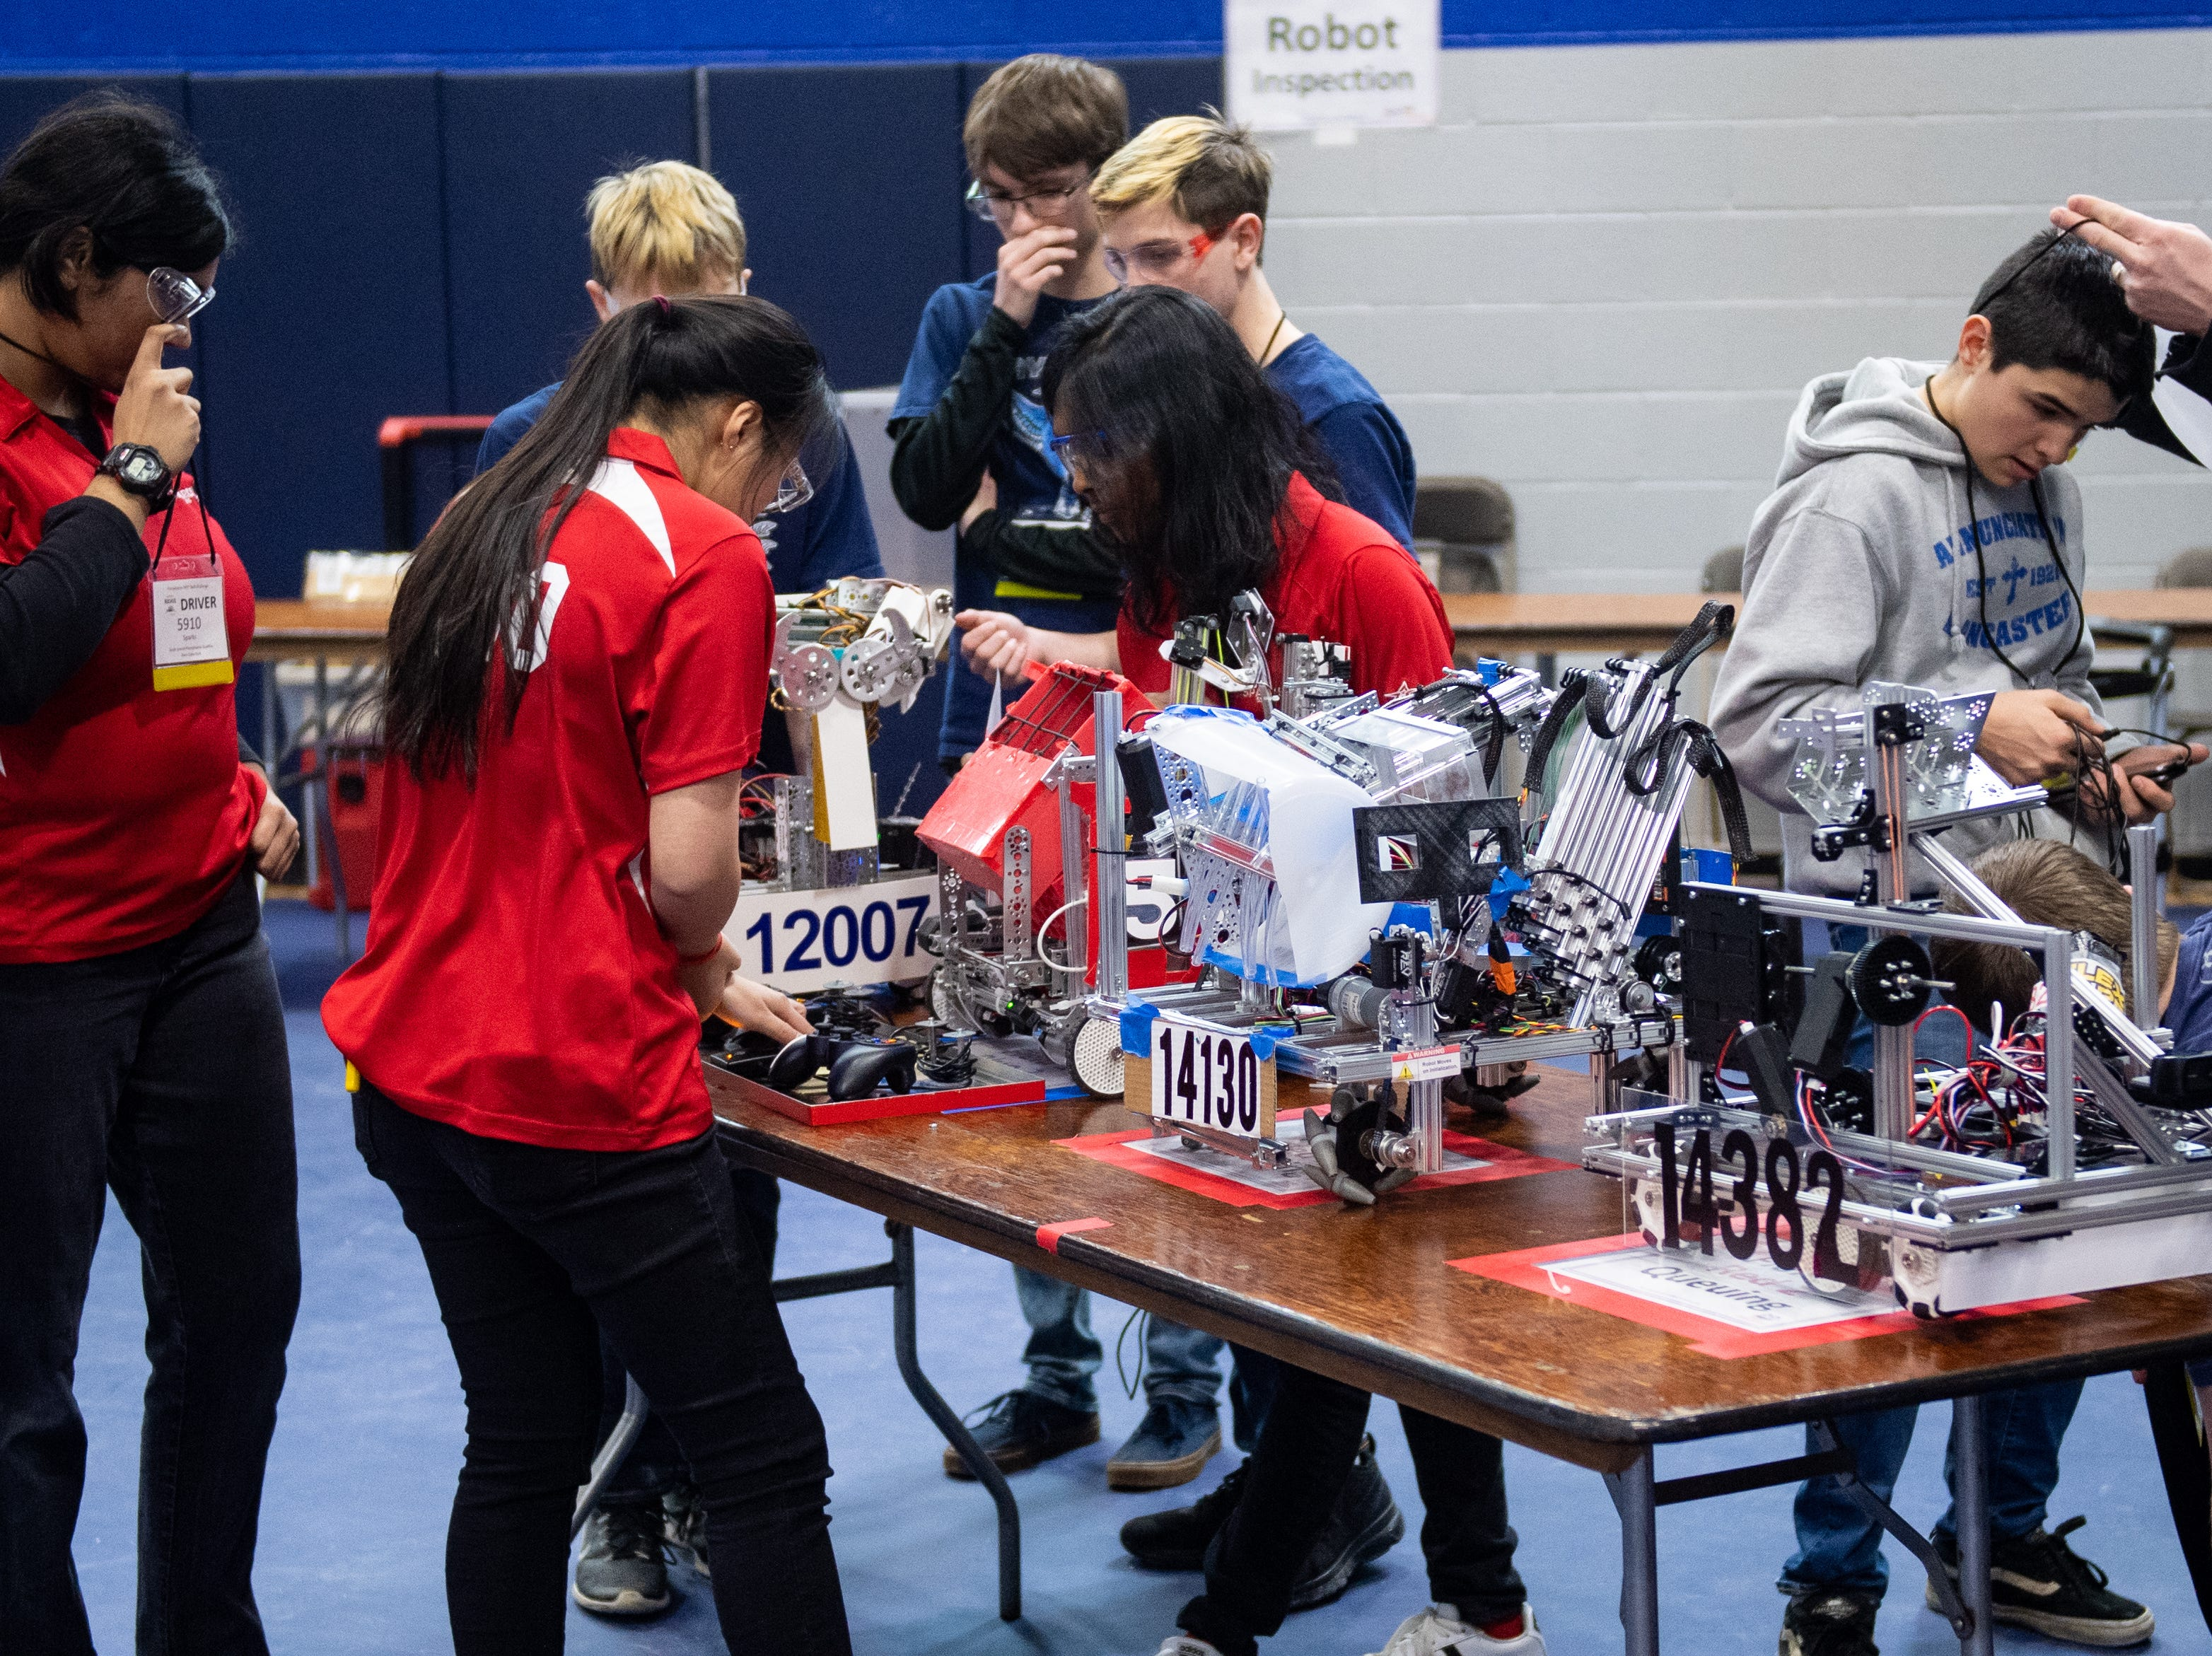 The robotics competition lasts two days and features 54 teams of middle and high school students, February 2, 2019.